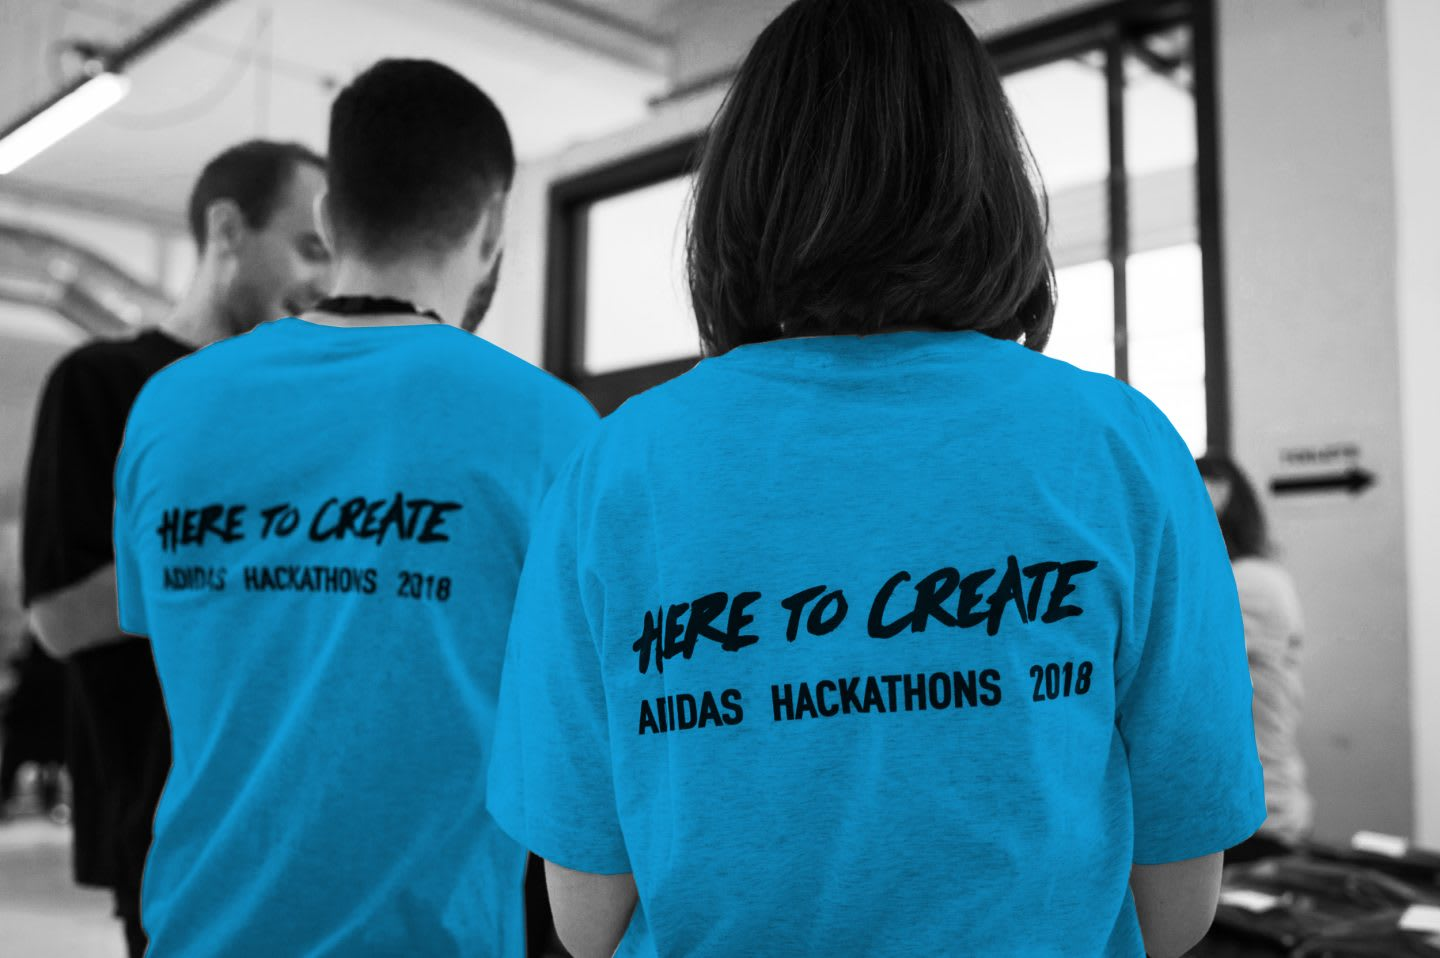 Participants of a Hackathon stand together and discuss their project wearing adidas Hackathon branded t-shirt, digital, ideas, innovation, technology, hackathon, coding, group, teamwork, project, GamePlan A